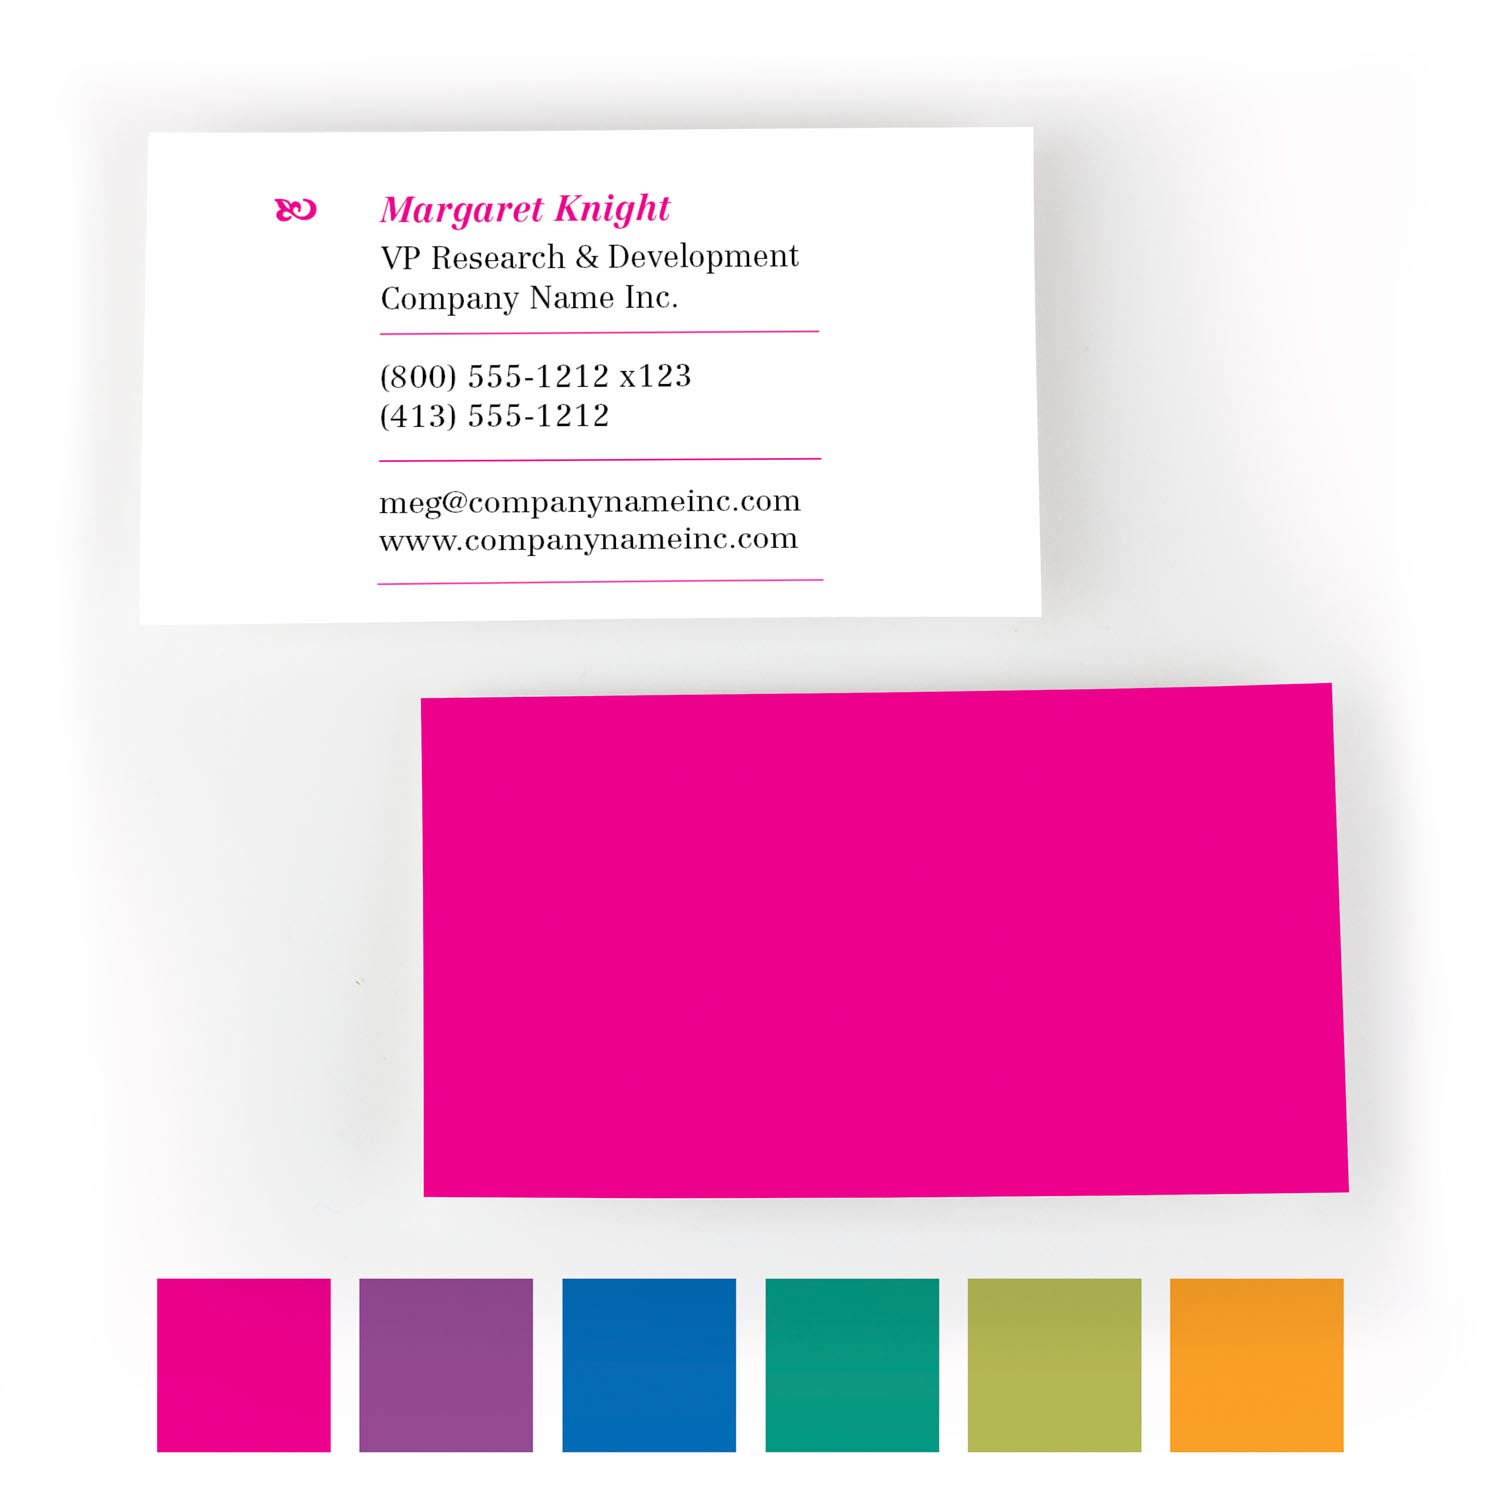 Buttonsmith Custom Premium Printed Superfine Business Cards - 3.5''x2'' - Quantity 200 - Double-Sided, Superfine Thick Luxury Touch Stock - Magenta - Made in The USA